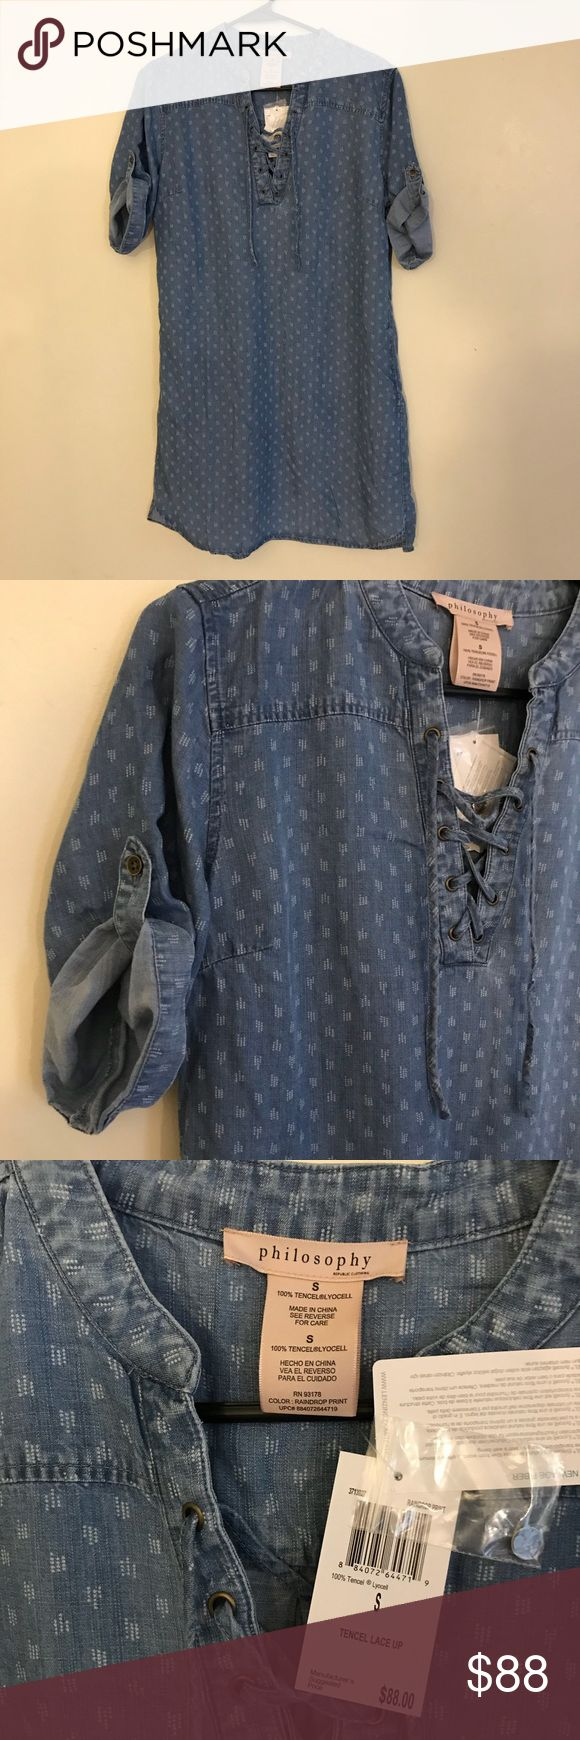 New Philosophy Lace Up Chambray Denim Tunic Dress ⚜️I love receiving offers through the offer button!⚜️ Brand new condition, as seen in pictures! Fast same or next day shipping!📨 Open to offers but I don't negotiate in the comments so please use the offer button😊 Philosophy Dresses